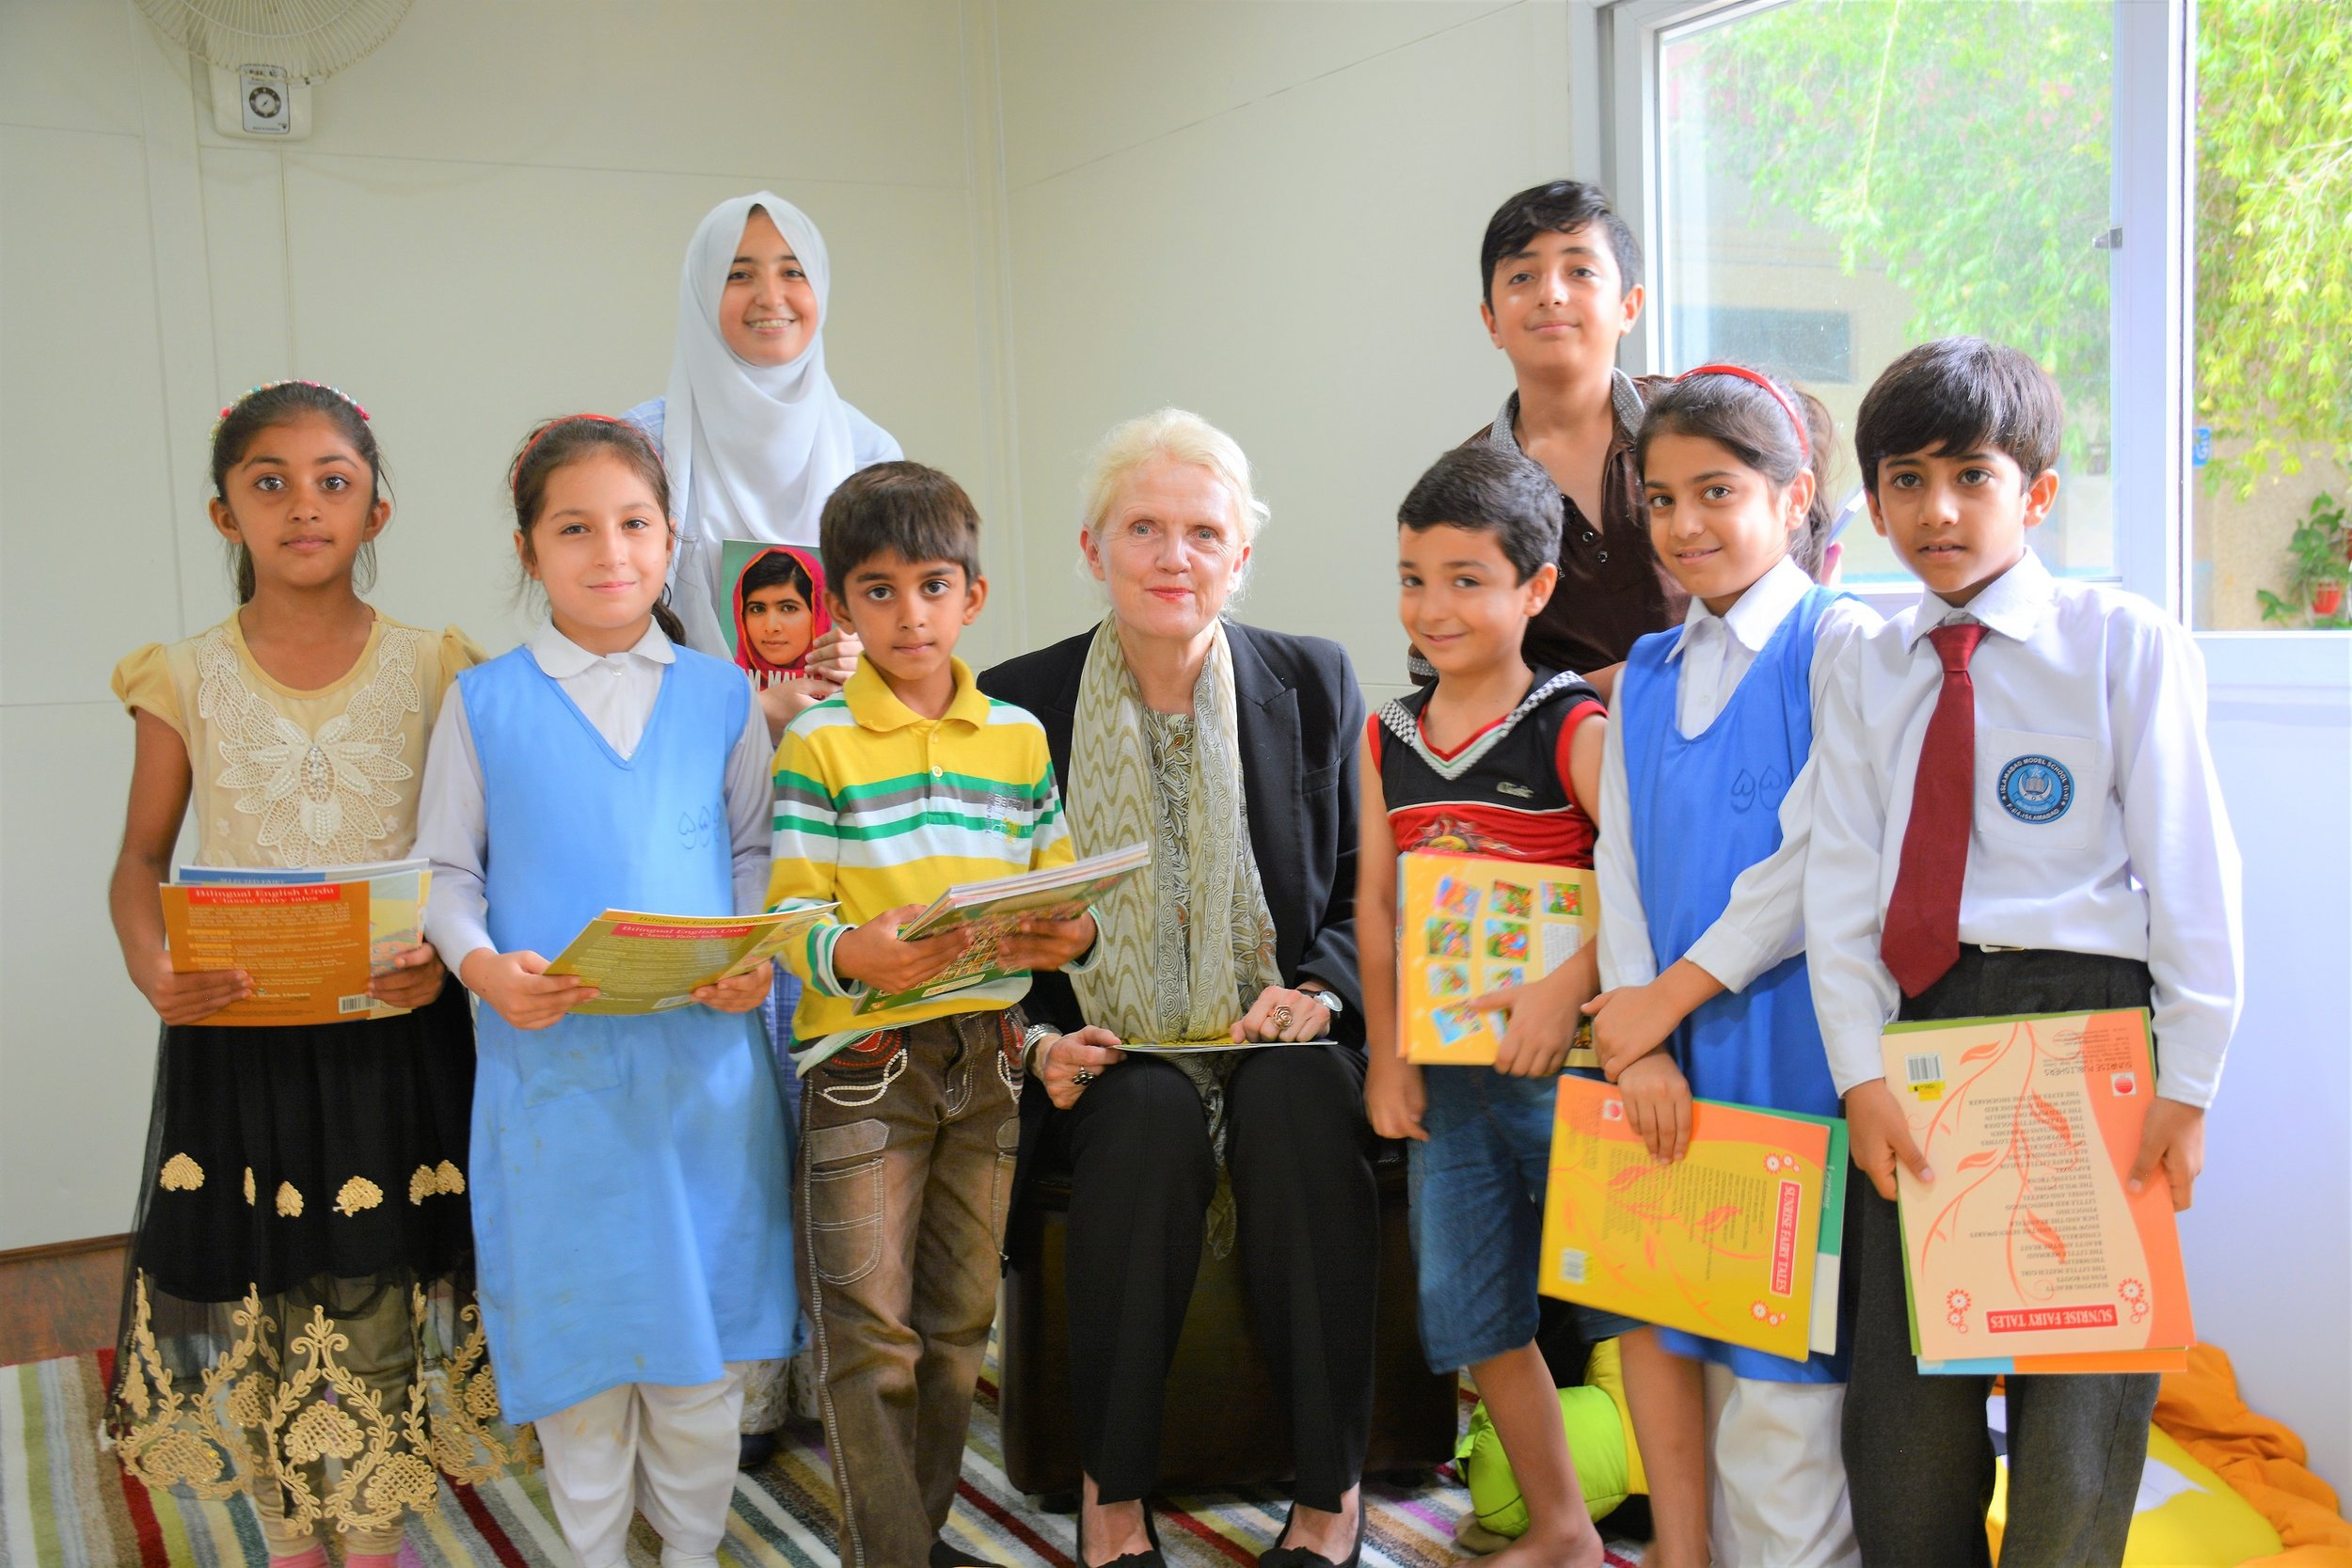 DFID Pakistan Deputy Head Judith Herbertson reading out to children on 31 July 2017, during the inauguration of a library that IMC Worldwide and UKAid donated to a primary school in Islamabad. Credit: Syed Abdullah Hameed/Humqadam.